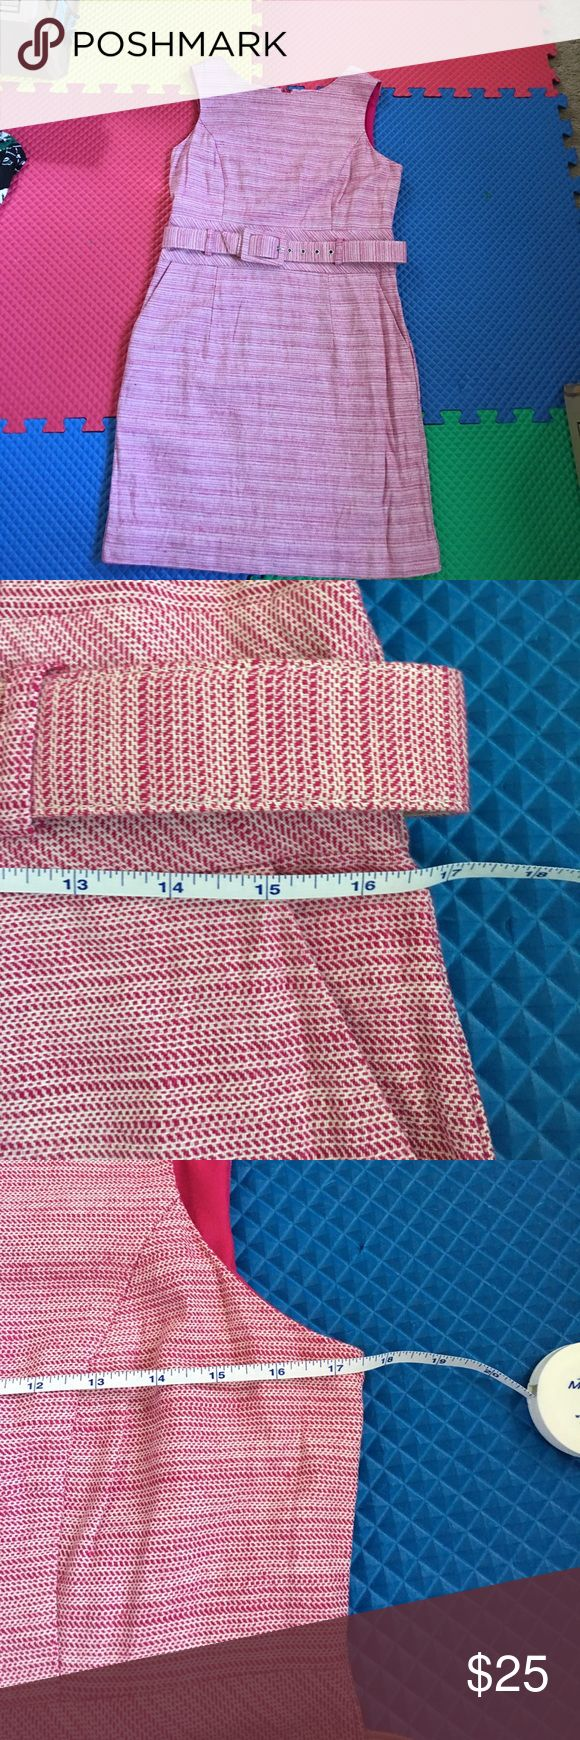 Banana Republic pink striped cocktail dress Reposh. Selling since it fits tight on me. Fits US size 10-12. Has two pockets on front. Banana Republic Dresses Midi